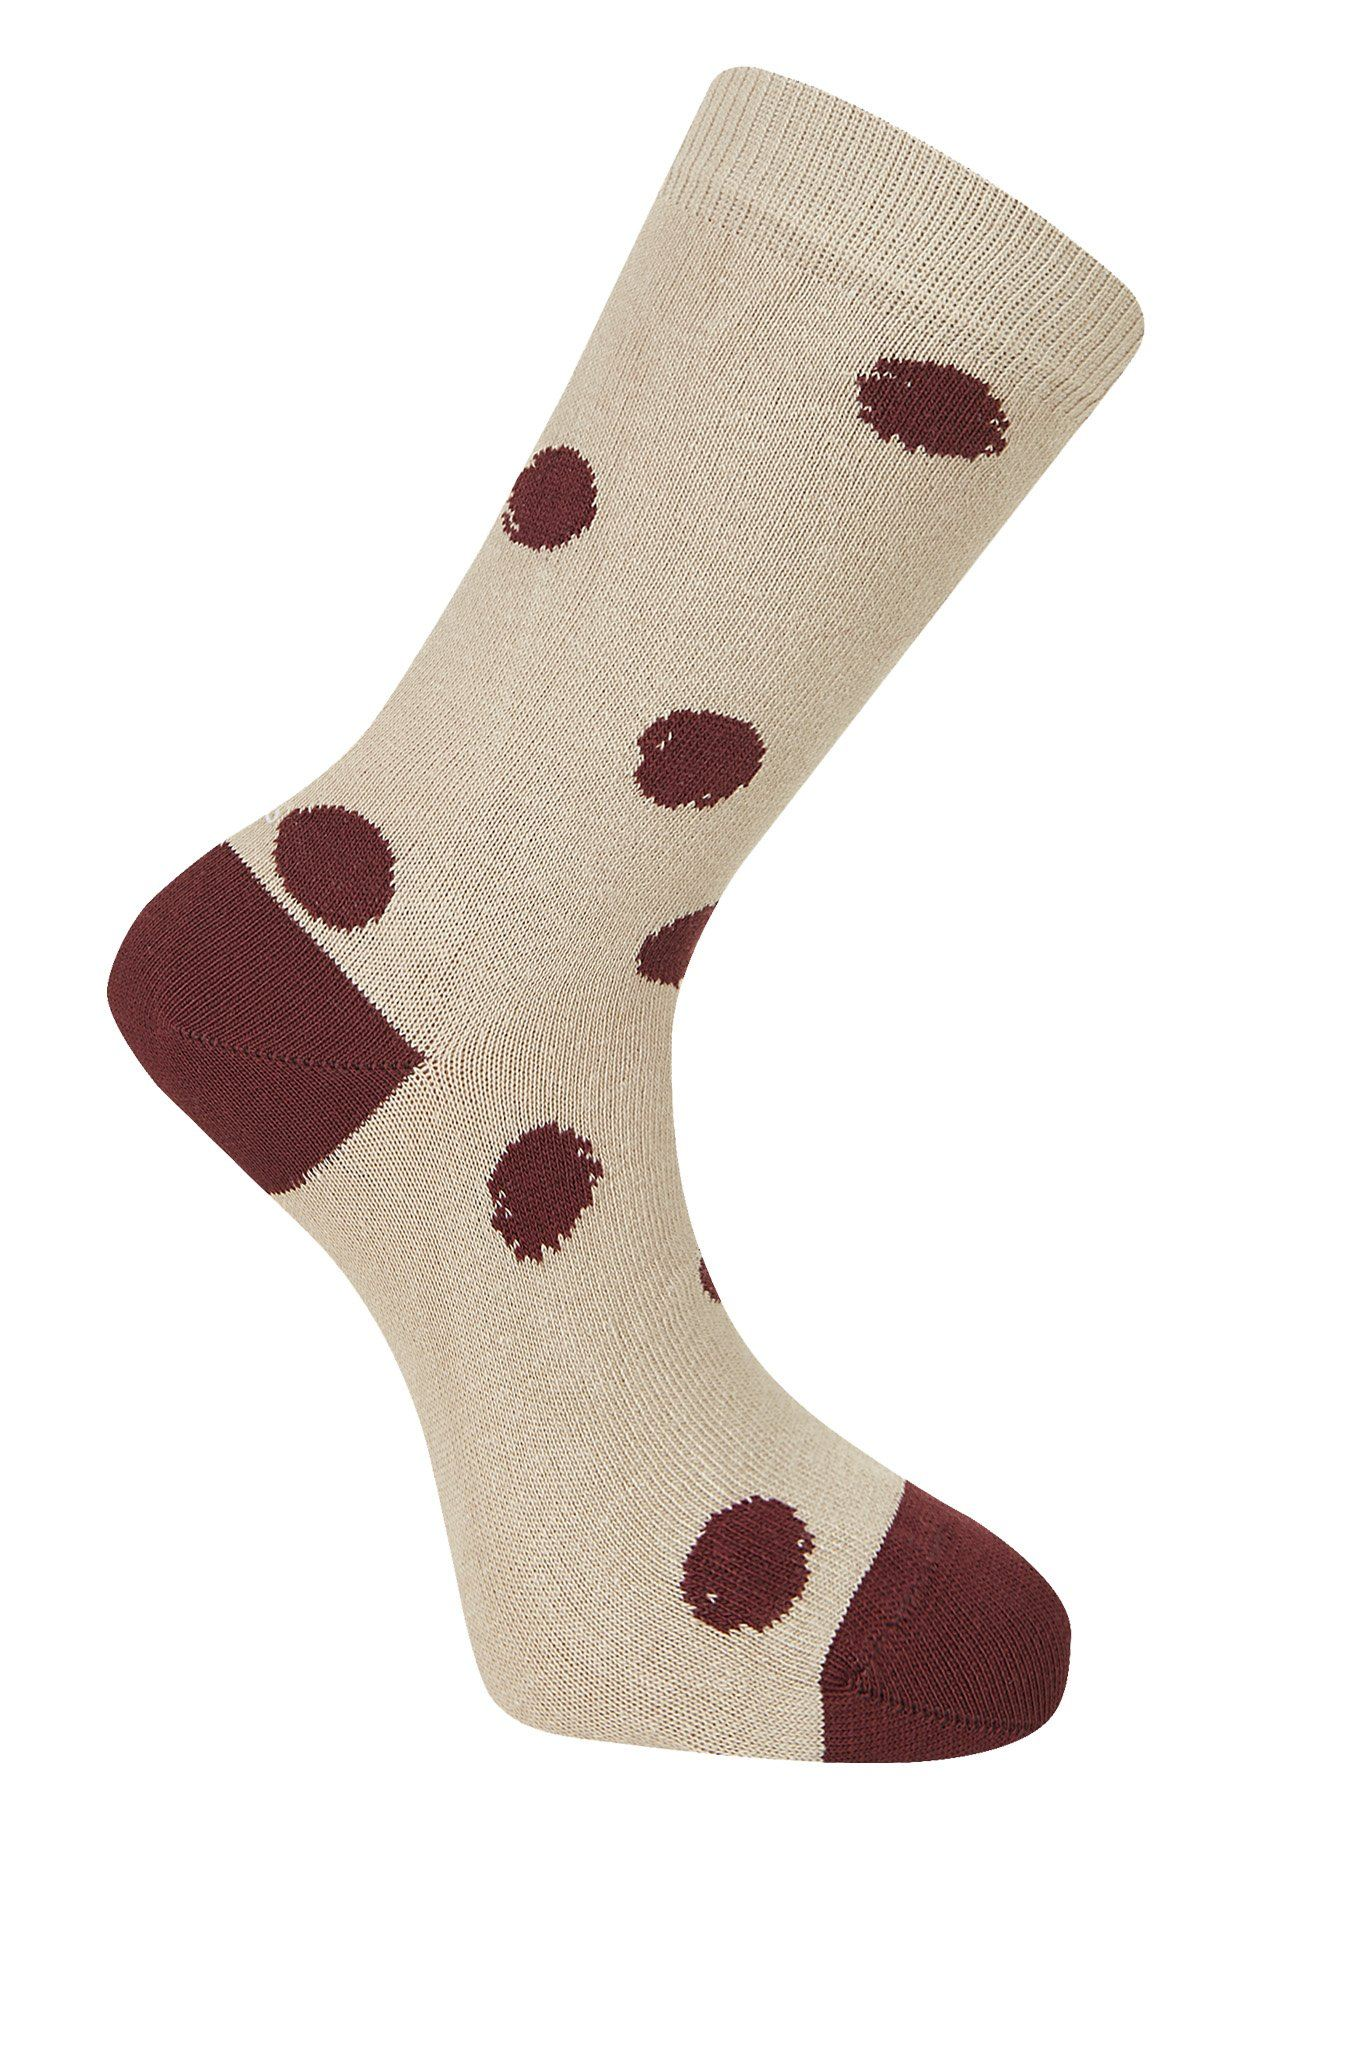 KUSAMA DOT Camel Organic Cotton Socks - Komodo Fashion